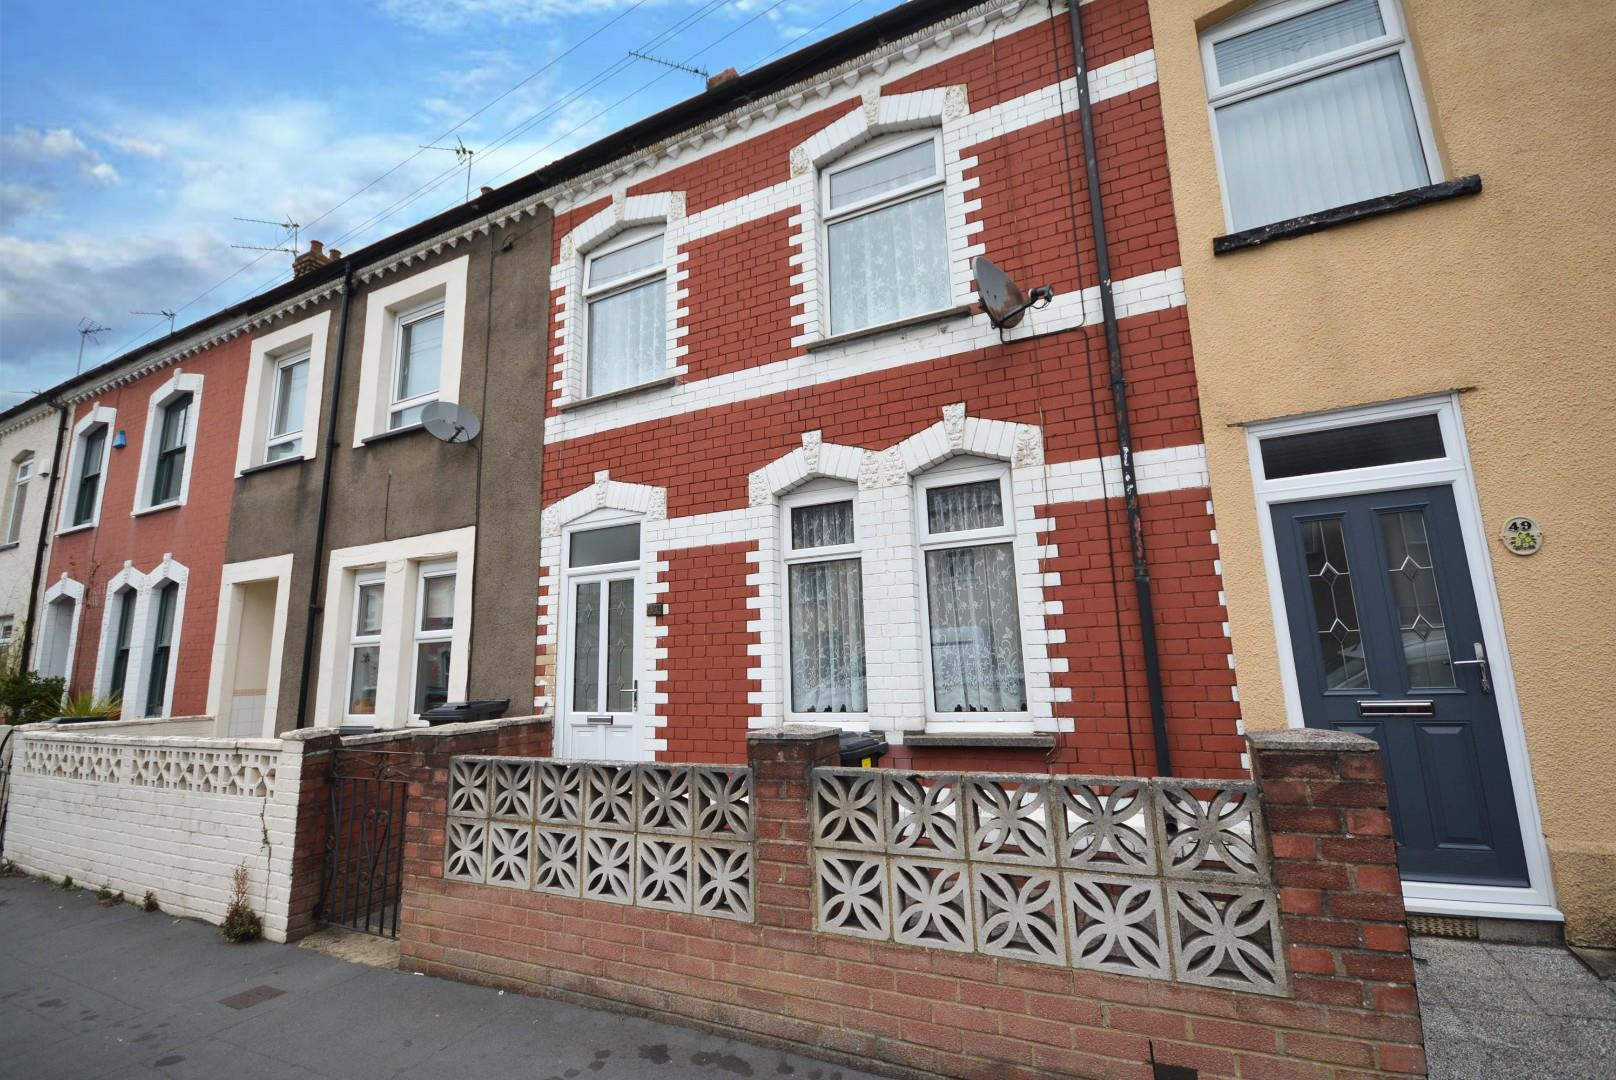 3 bed terraced house for sale in Burnaby Street, Cardiff, CF24